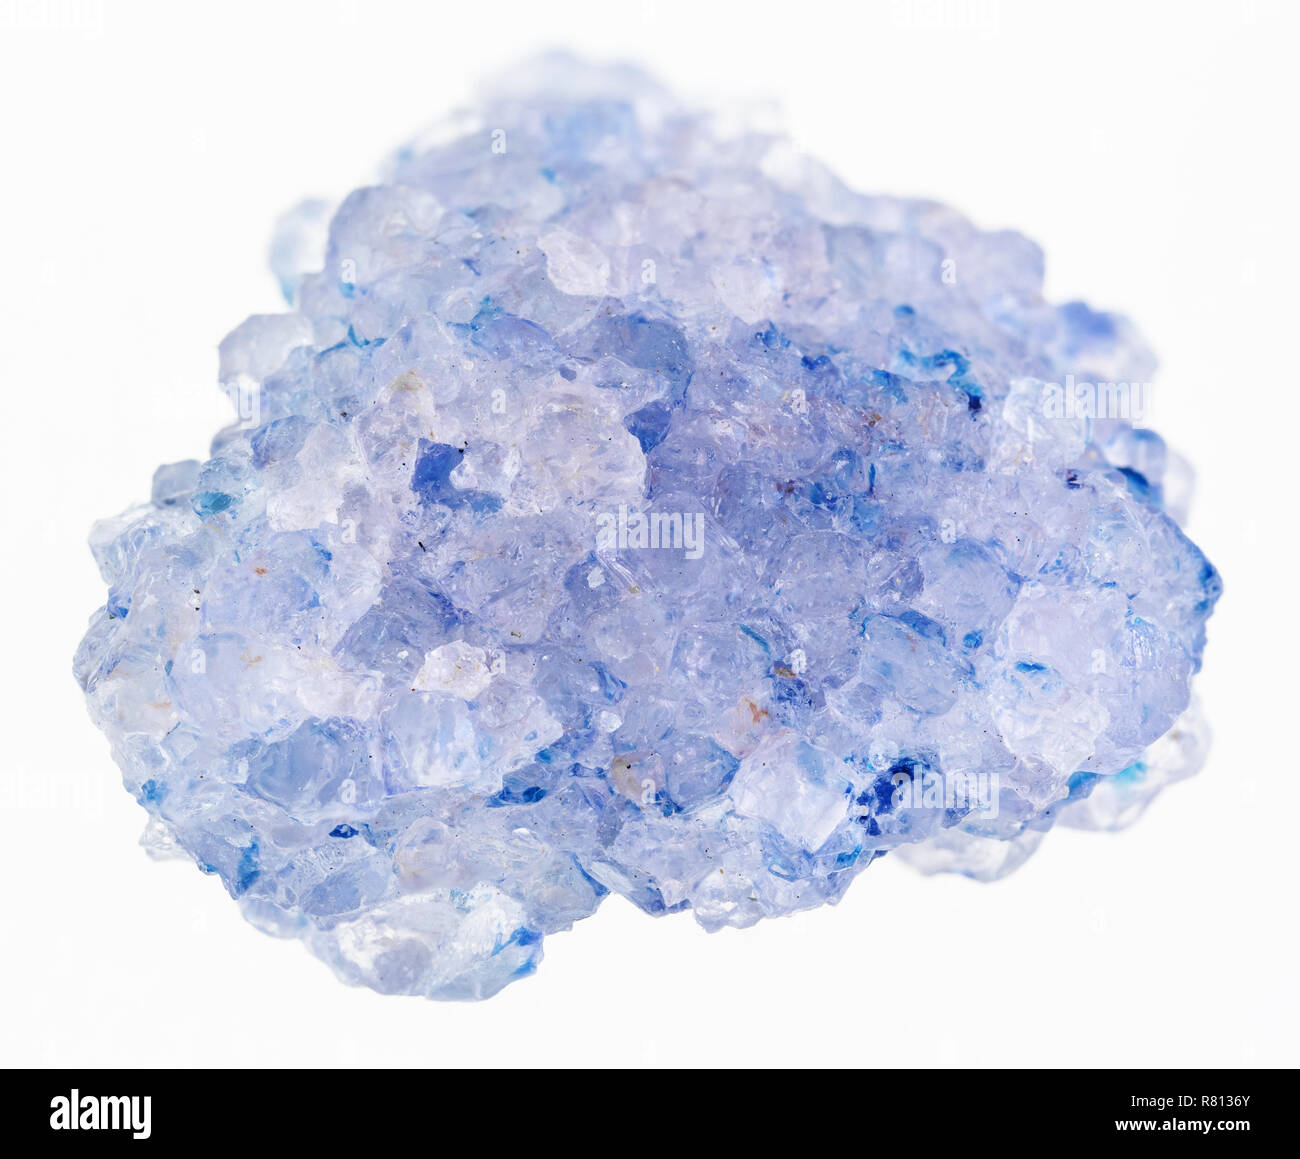 macro photography of natural mineral from geological collection - raw celestine (celestite) stone on white background - Stock Image